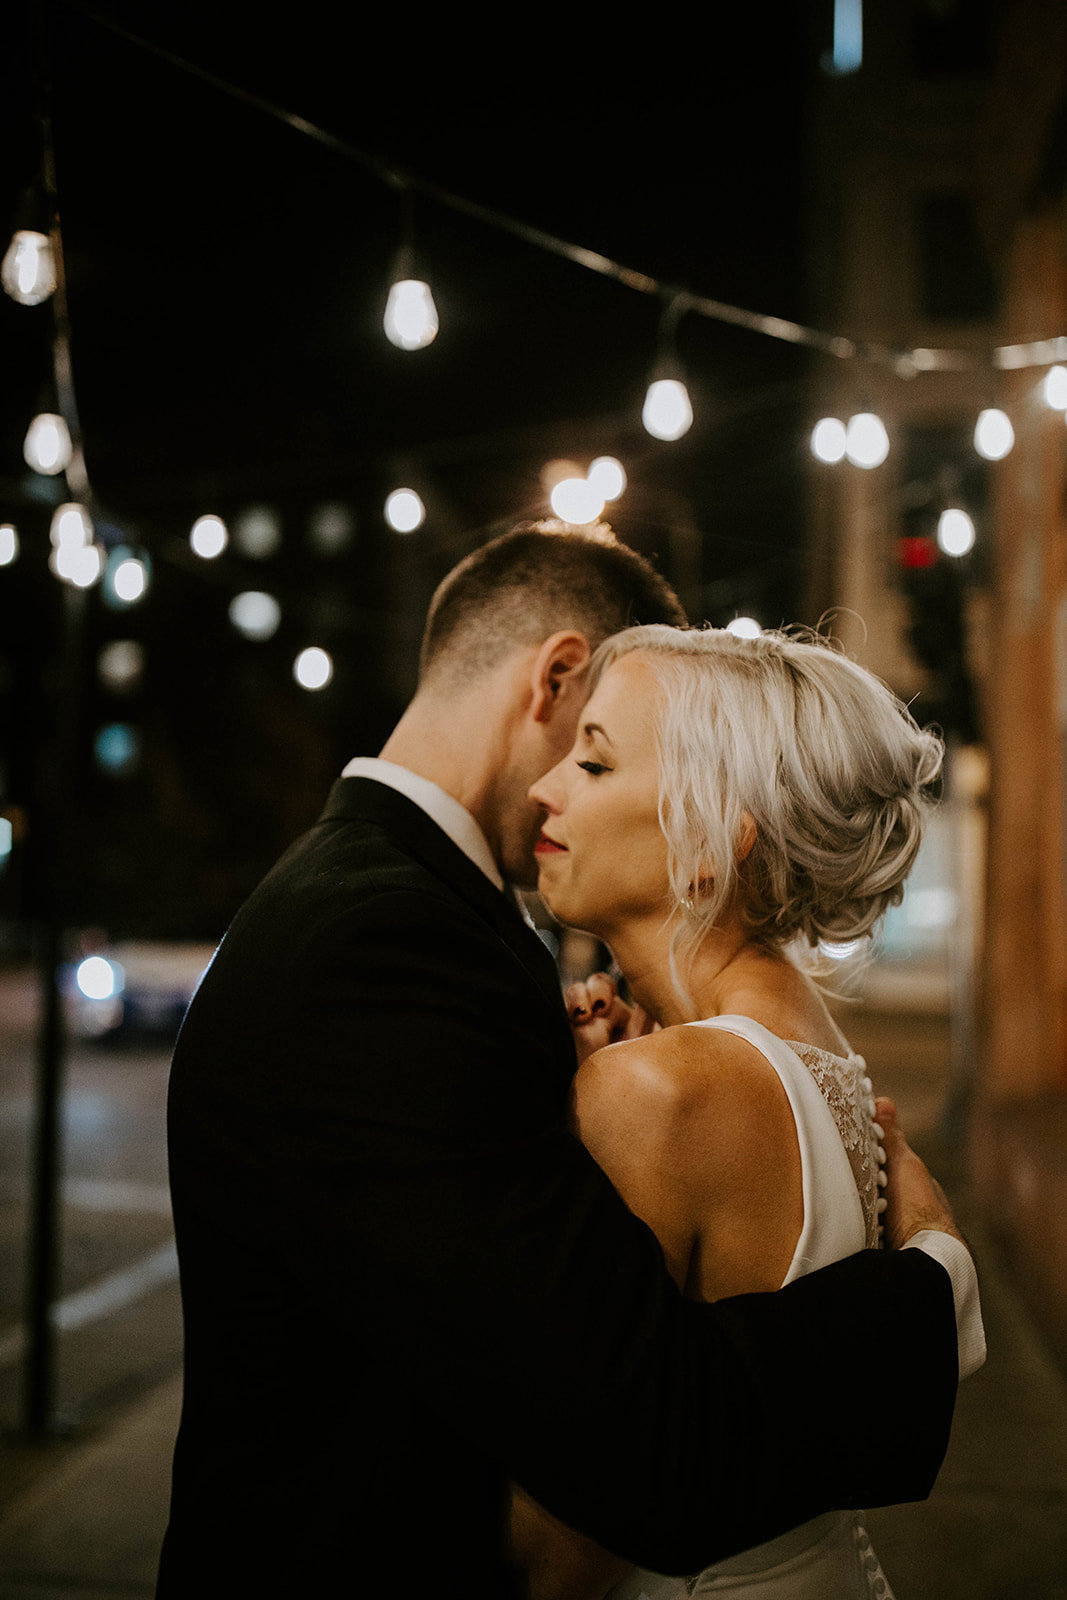 A bride and groom embrace with city lights behind them.